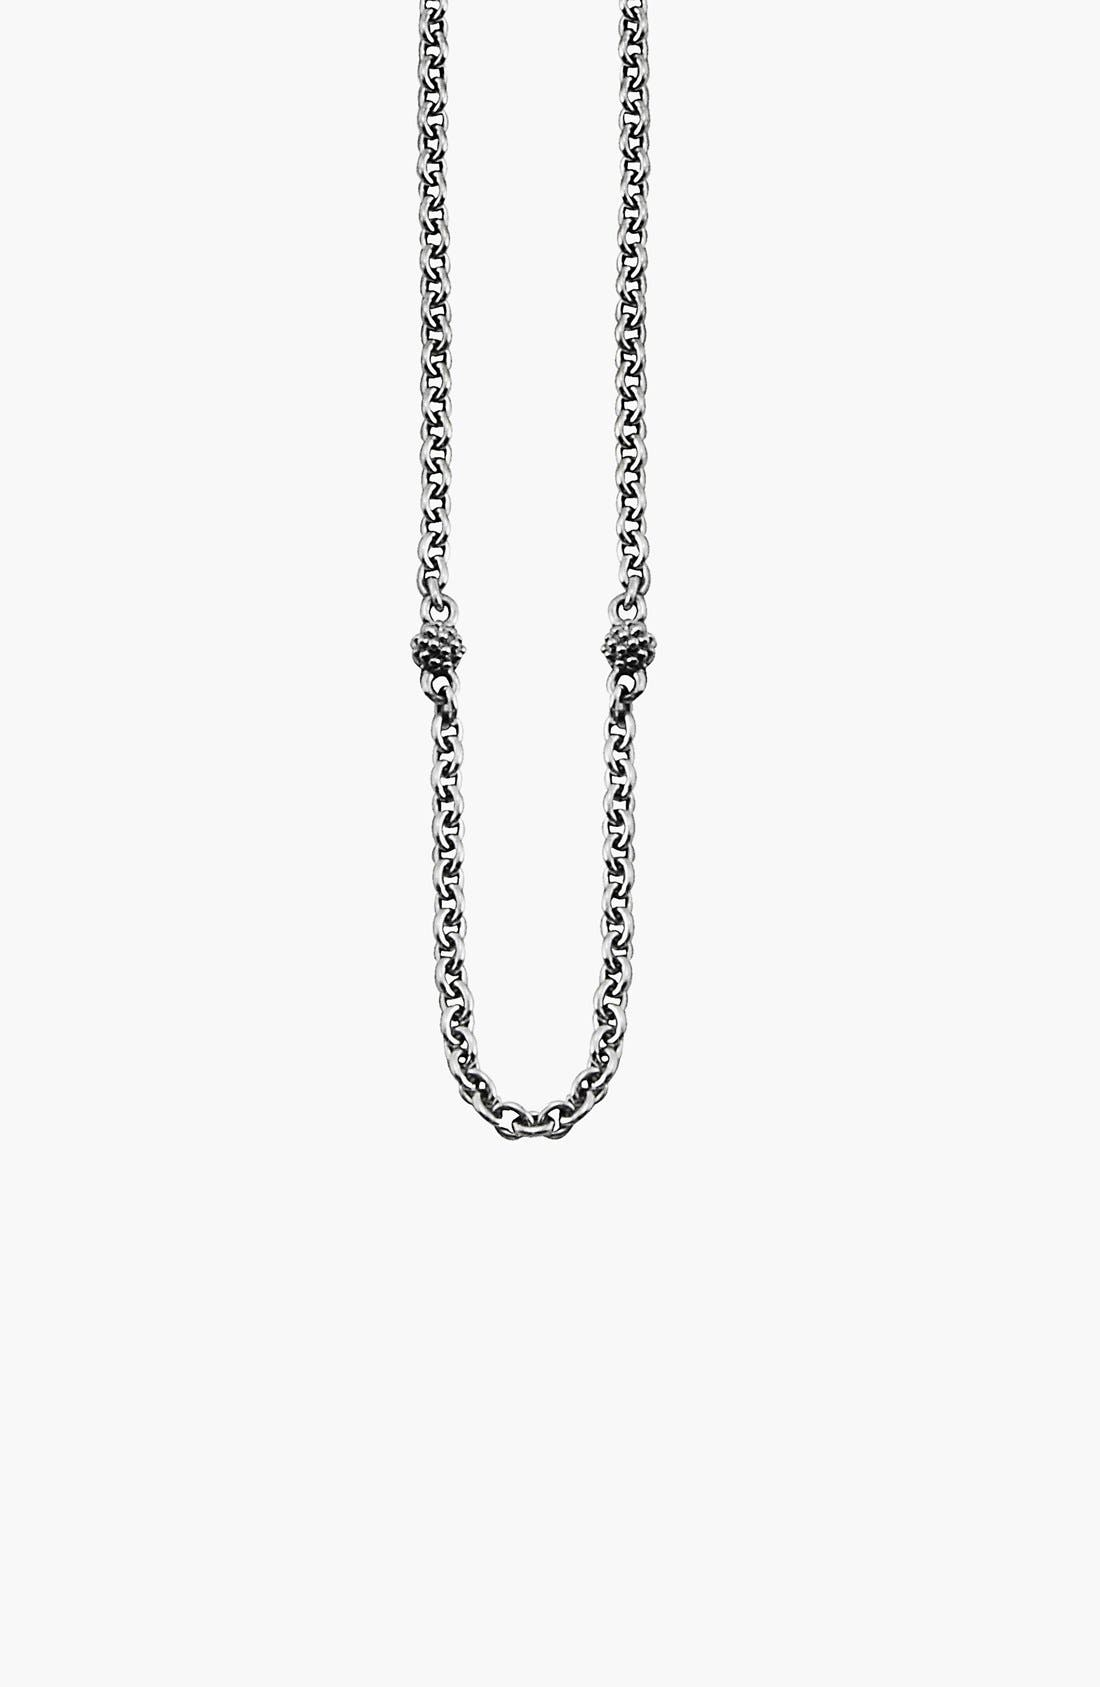 Caviar Station Chain Necklace,                             Alternate thumbnail 3, color,                             Sterling Silver